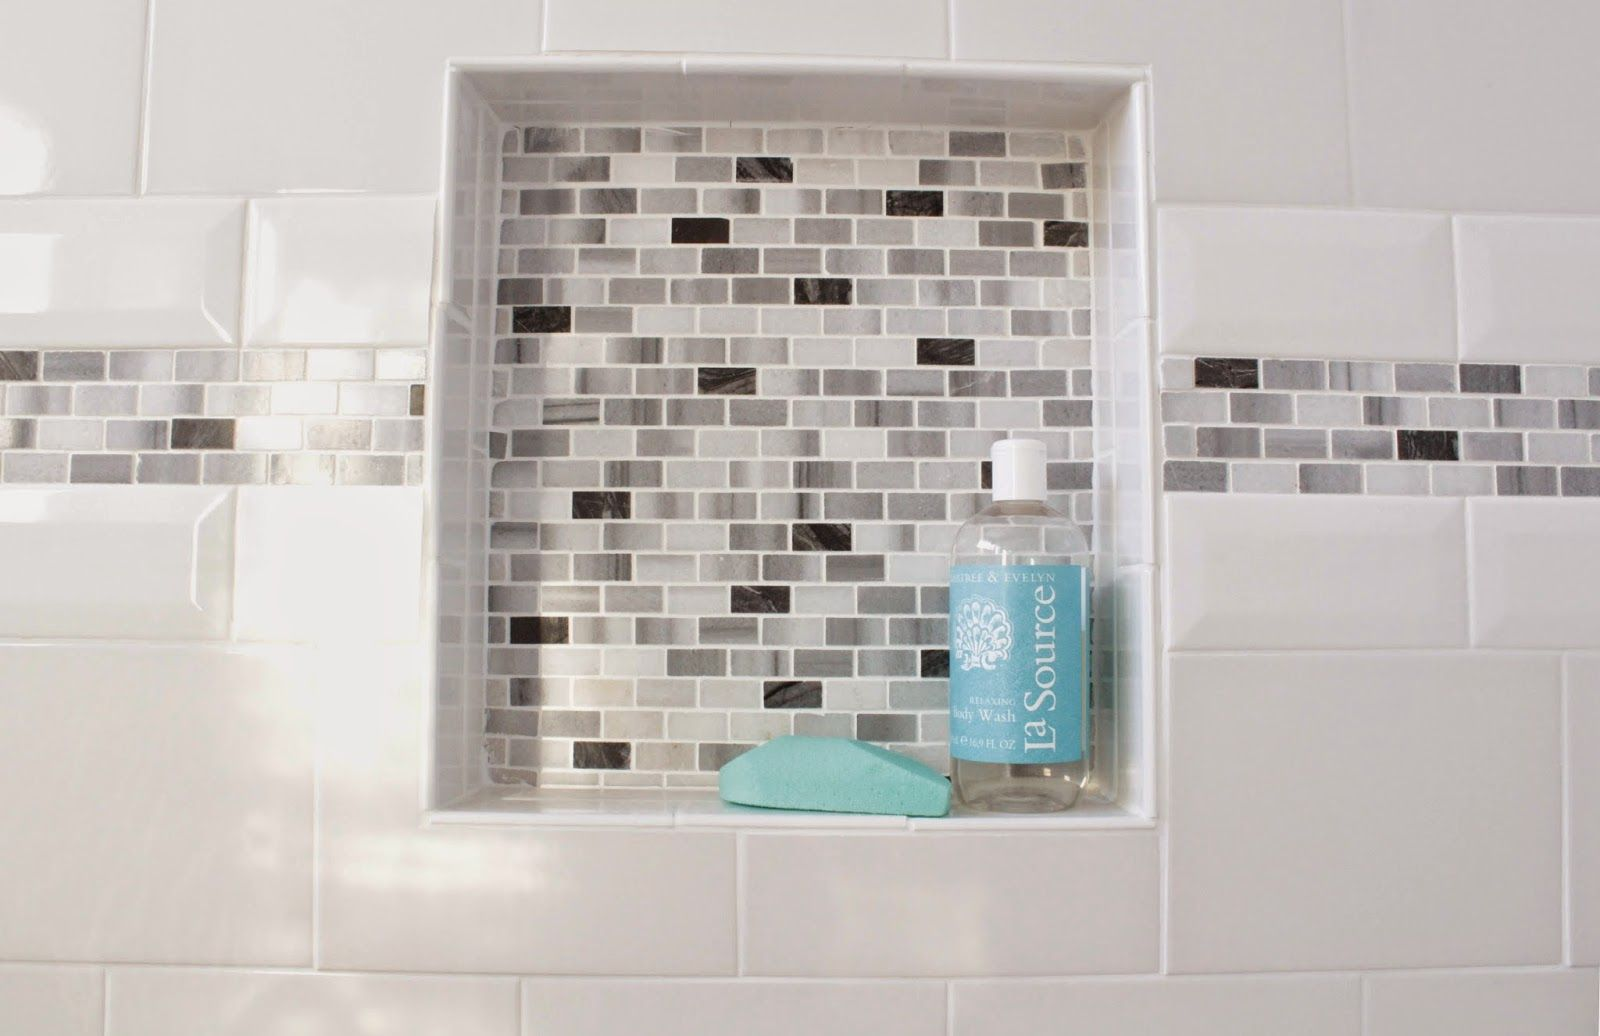 Us ceramic tile color collection bright snow white subway tile us ceramic tile color collection bright snow white subway tile with durock 16 in x 16 in x 4 in shower niche tiled with daltile snow illu pinteres dailygadgetfo Images